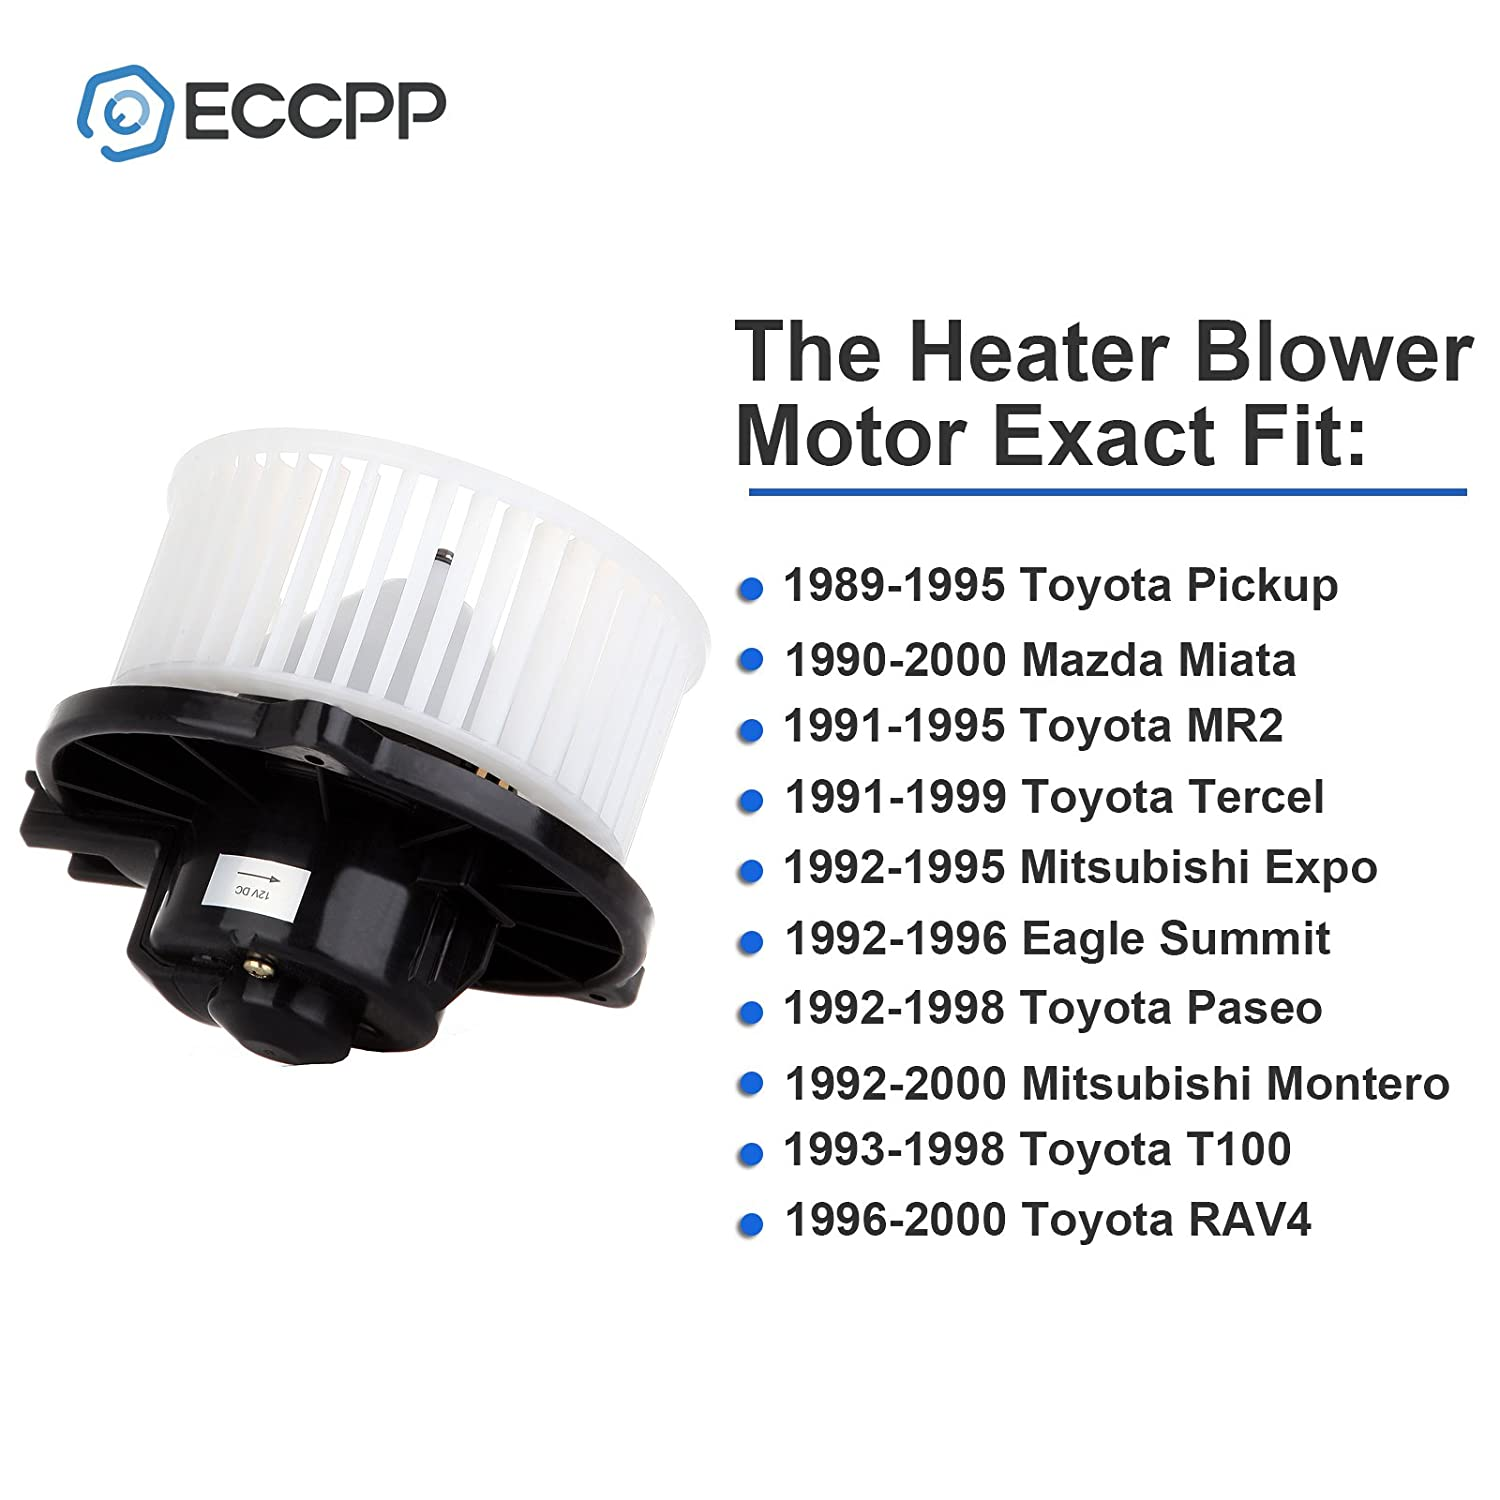 Hvac Plastic Heater Blower Motor W Fan Cage Eccpp For 1994 Eagle Summit Wiring Diagram 1989 1995 Toyota Pickup 1990 2000 Mazda Miata 1991 Mr2 1999